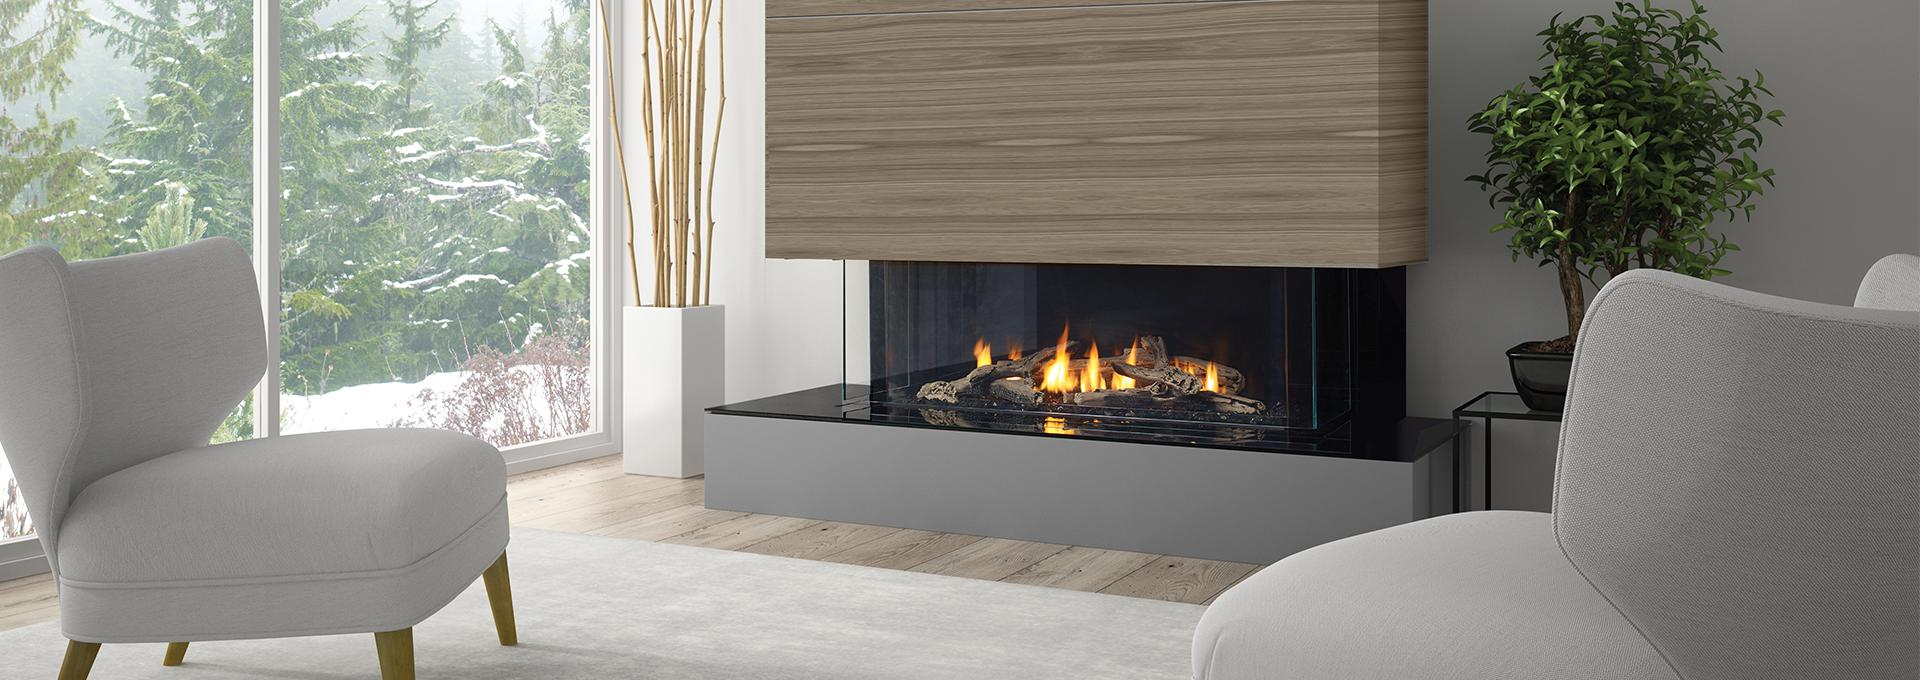 Regency city series san francisco bay 40 modern gas for Modern gas fireplace price